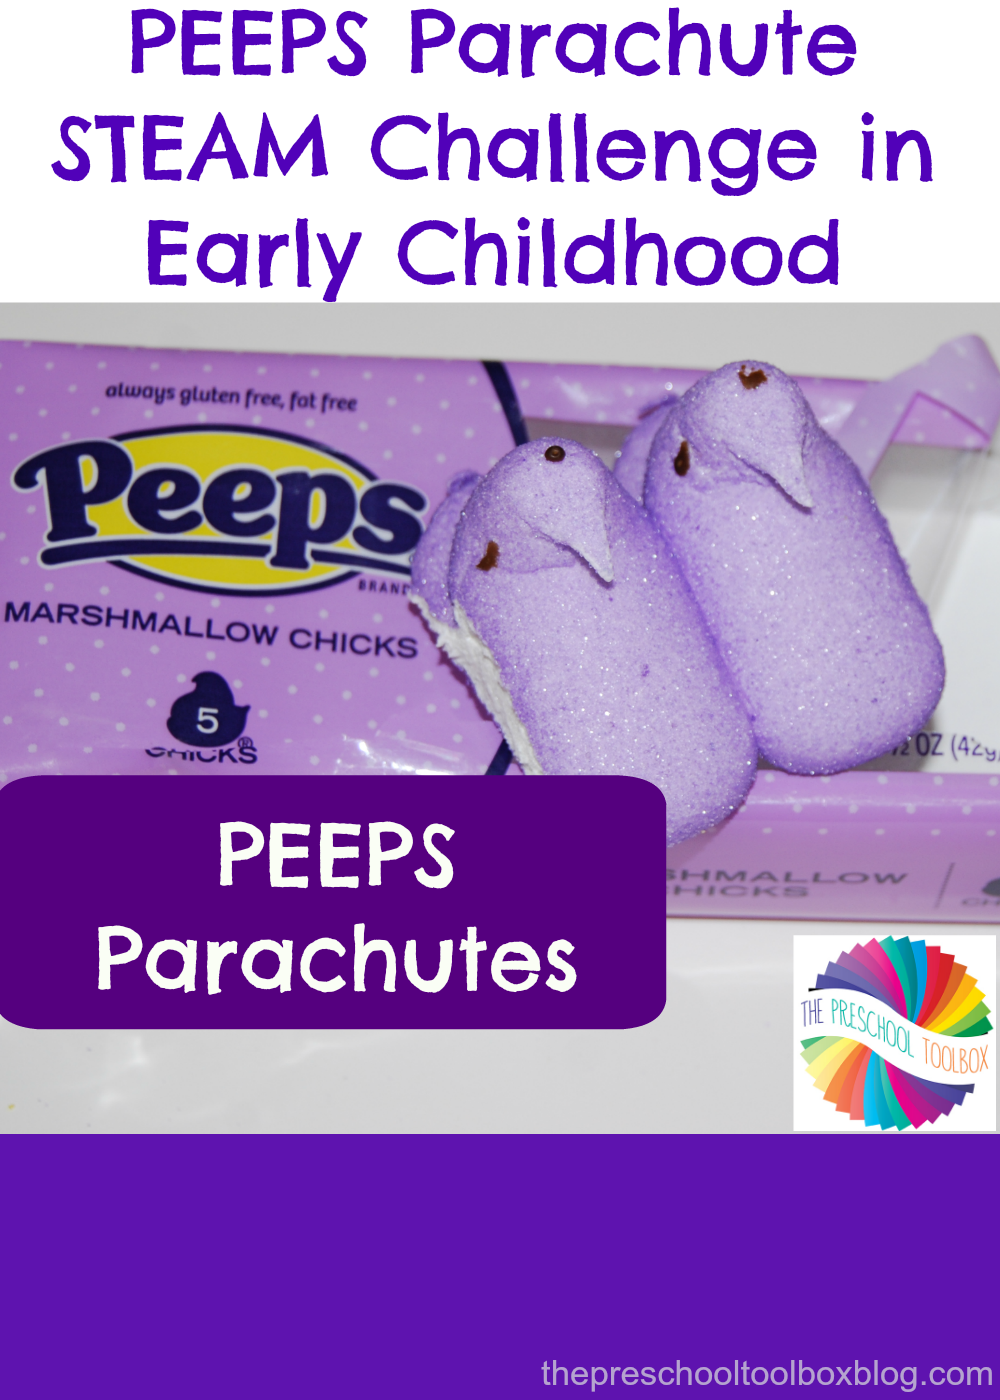 peeps parachute stem challenge in early childhood   u2022 the